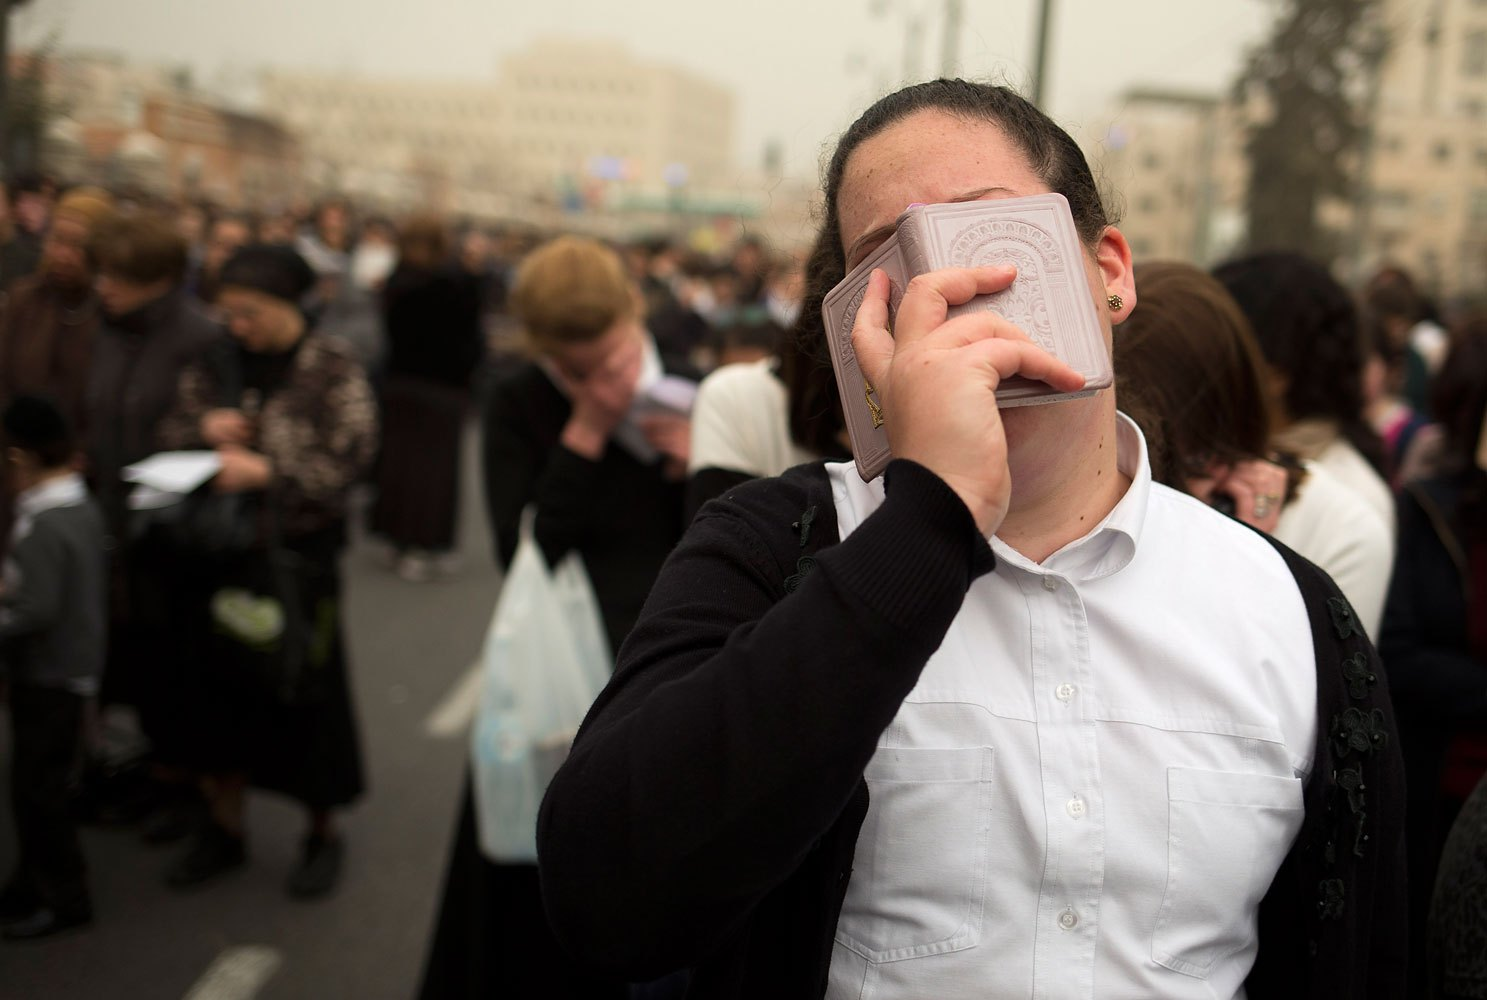 An ultra-Orthodox woman prays during a mass protest in Jerusalem, March 2, 2014.